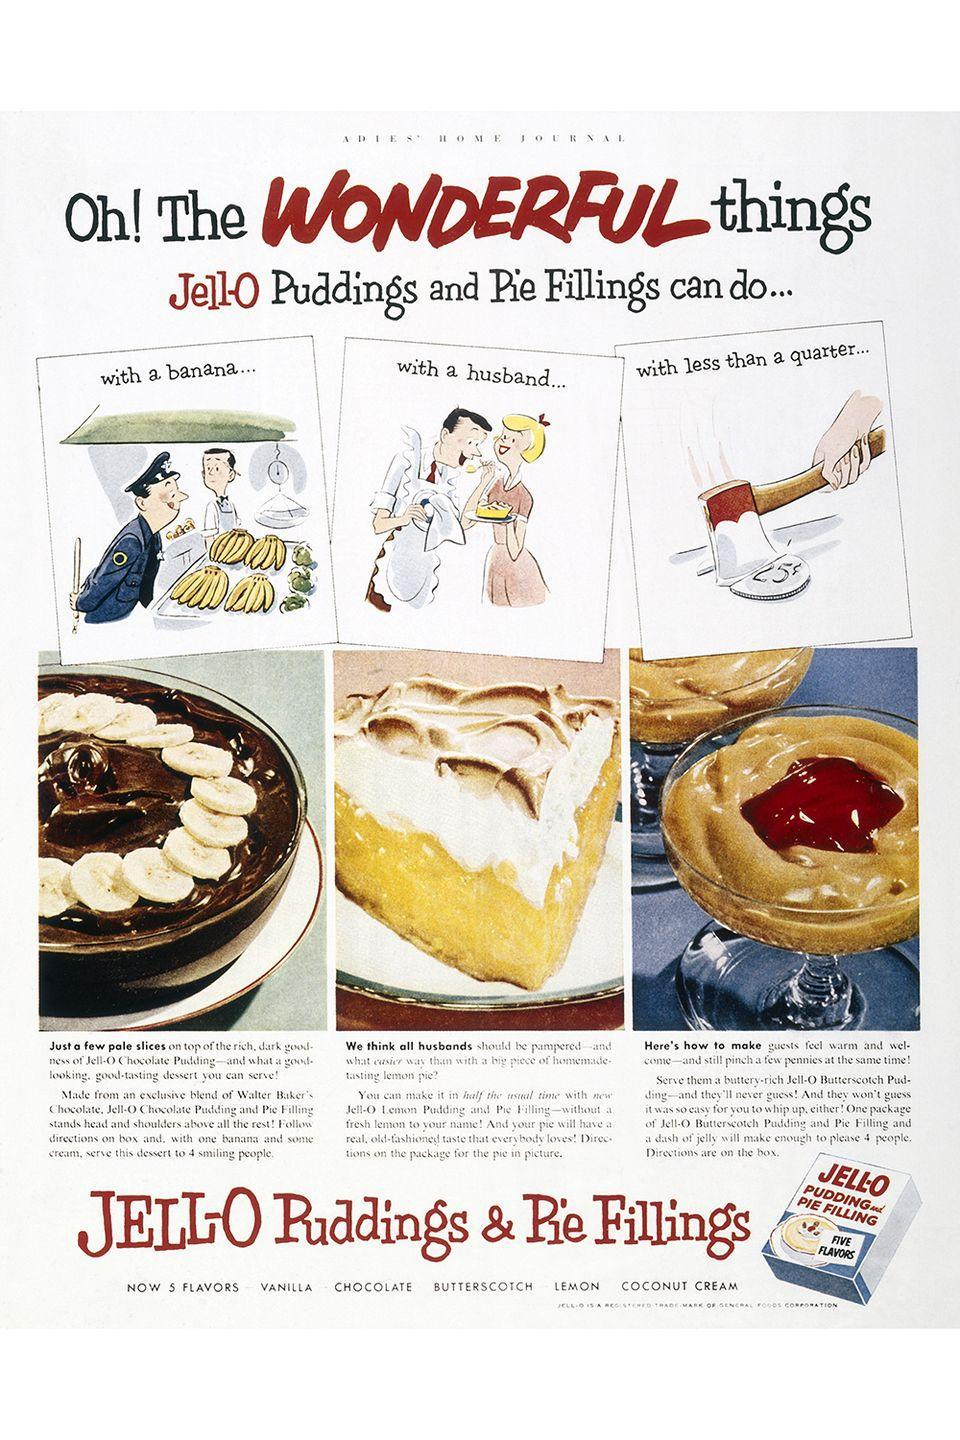 "<p>By the '60s, Jell-O had become a key <a href=""https://www.goodhousekeeping.com/holidays/thanksgiving-ideas/g1532/thanksgiving-desserts/"" rel=""nofollow noopener"" target=""_blank"" data-ylk=""slk:dessert ingredient"" class=""link rapid-noclick-resp"">dessert ingredient</a>. From jiggly Jell-O molds with bits of fruit suspended inside to Jell-O pudding pie, it was a good bet that something on the table contained gelatin. And today, it still comes in handy for things like <a href=""https://www.goodhousekeeping.com/food-recipes/dessert/a35465/pumpkin-pie-jello-shots/"" rel=""nofollow noopener"" target=""_blank"" data-ylk=""slk:pumpkin pie Jell-O shots"" class=""link rapid-noclick-resp"">pumpkin pie Jell-O shots</a>.</p>"